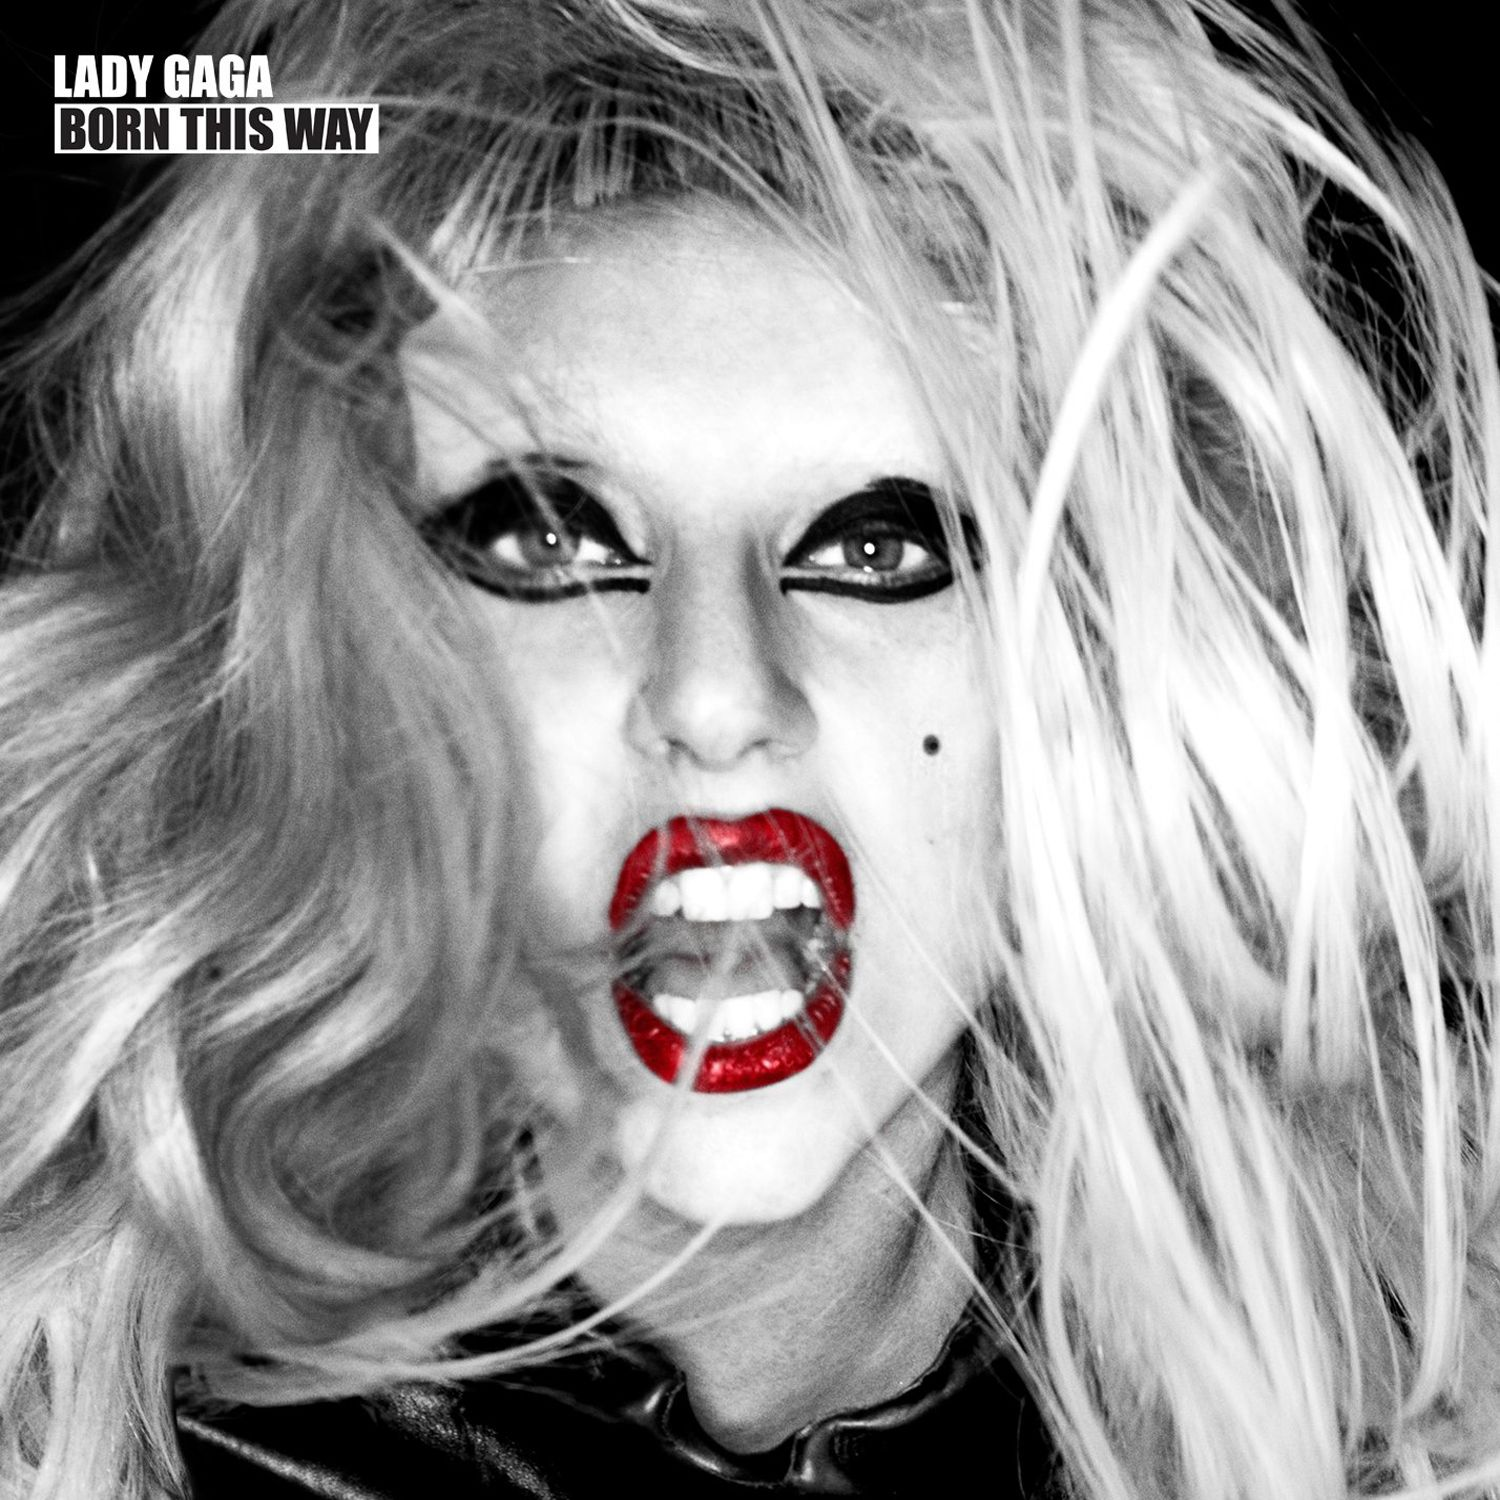 FileLady gaga born this way